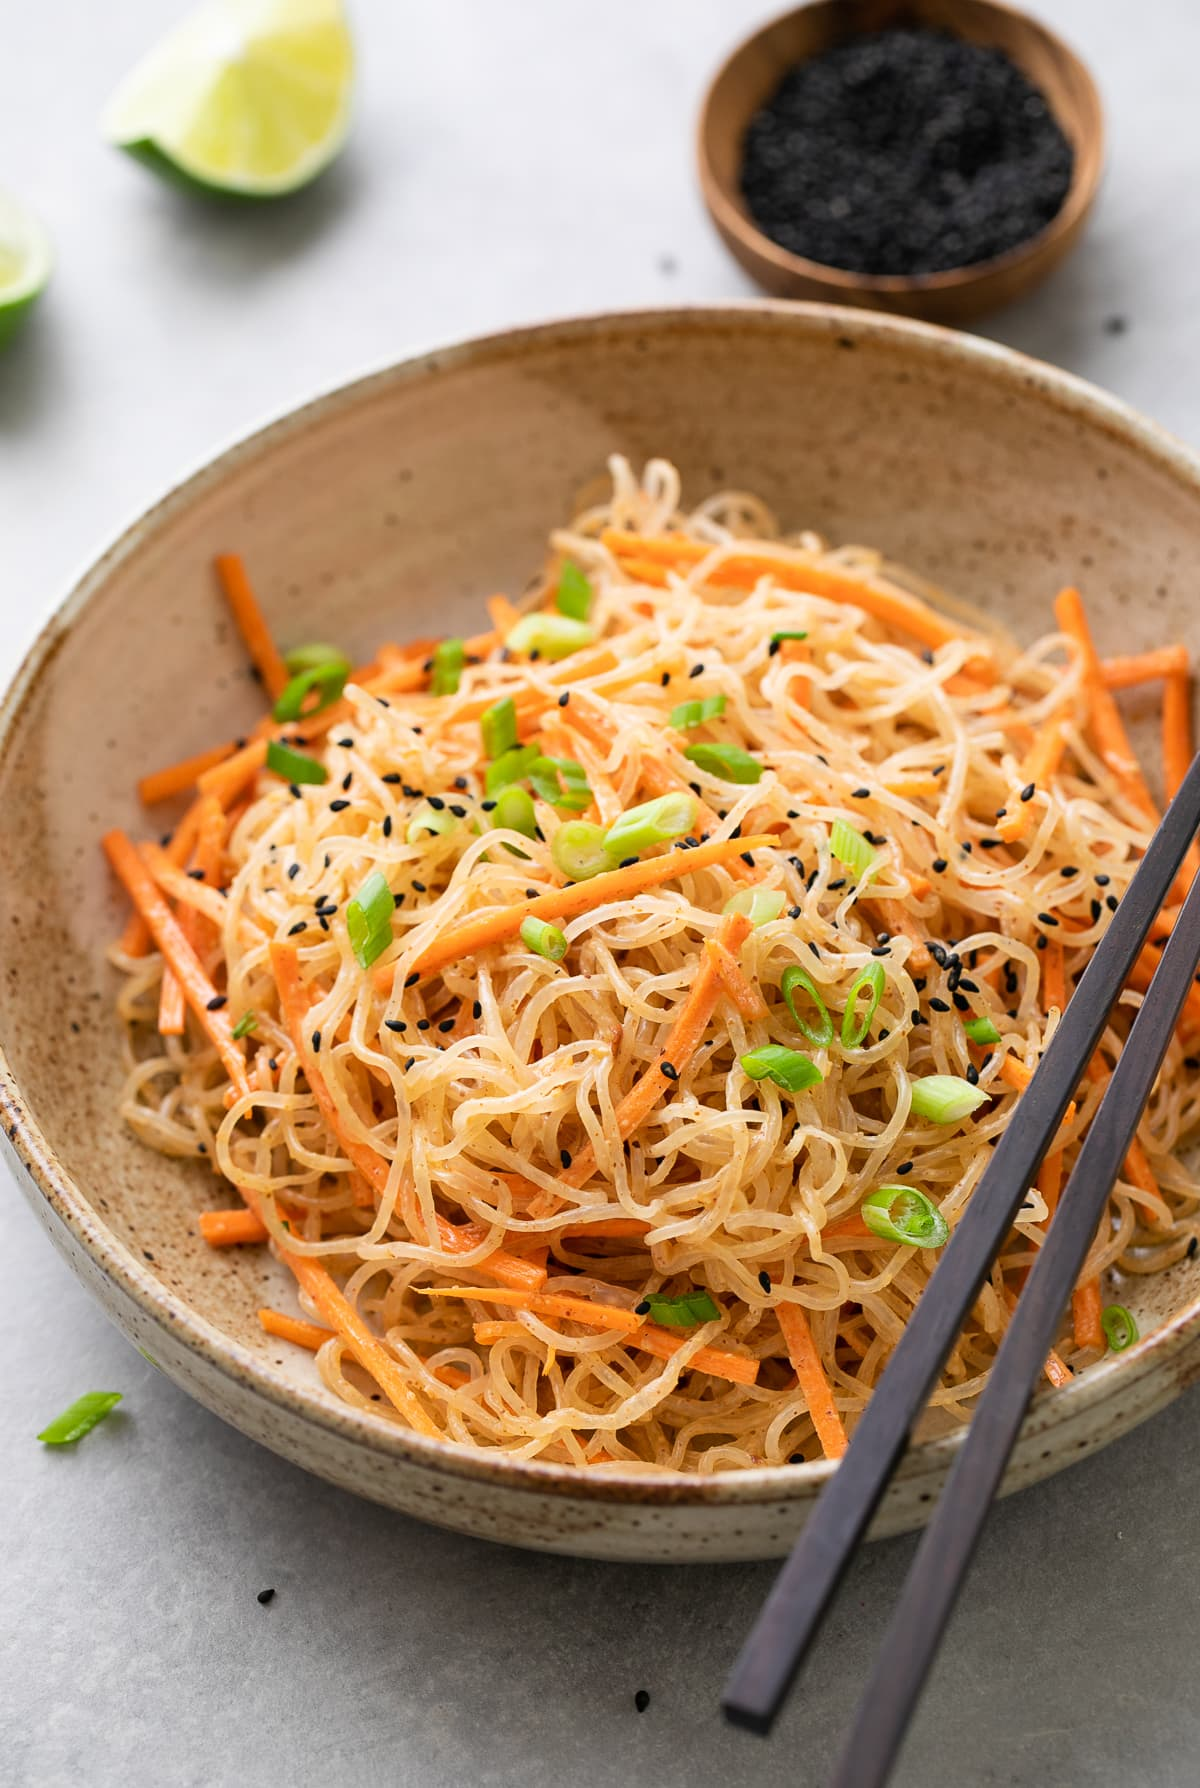 side angle view of serving of kelp noodle salad in bowl with chopsticks and items surrounding.